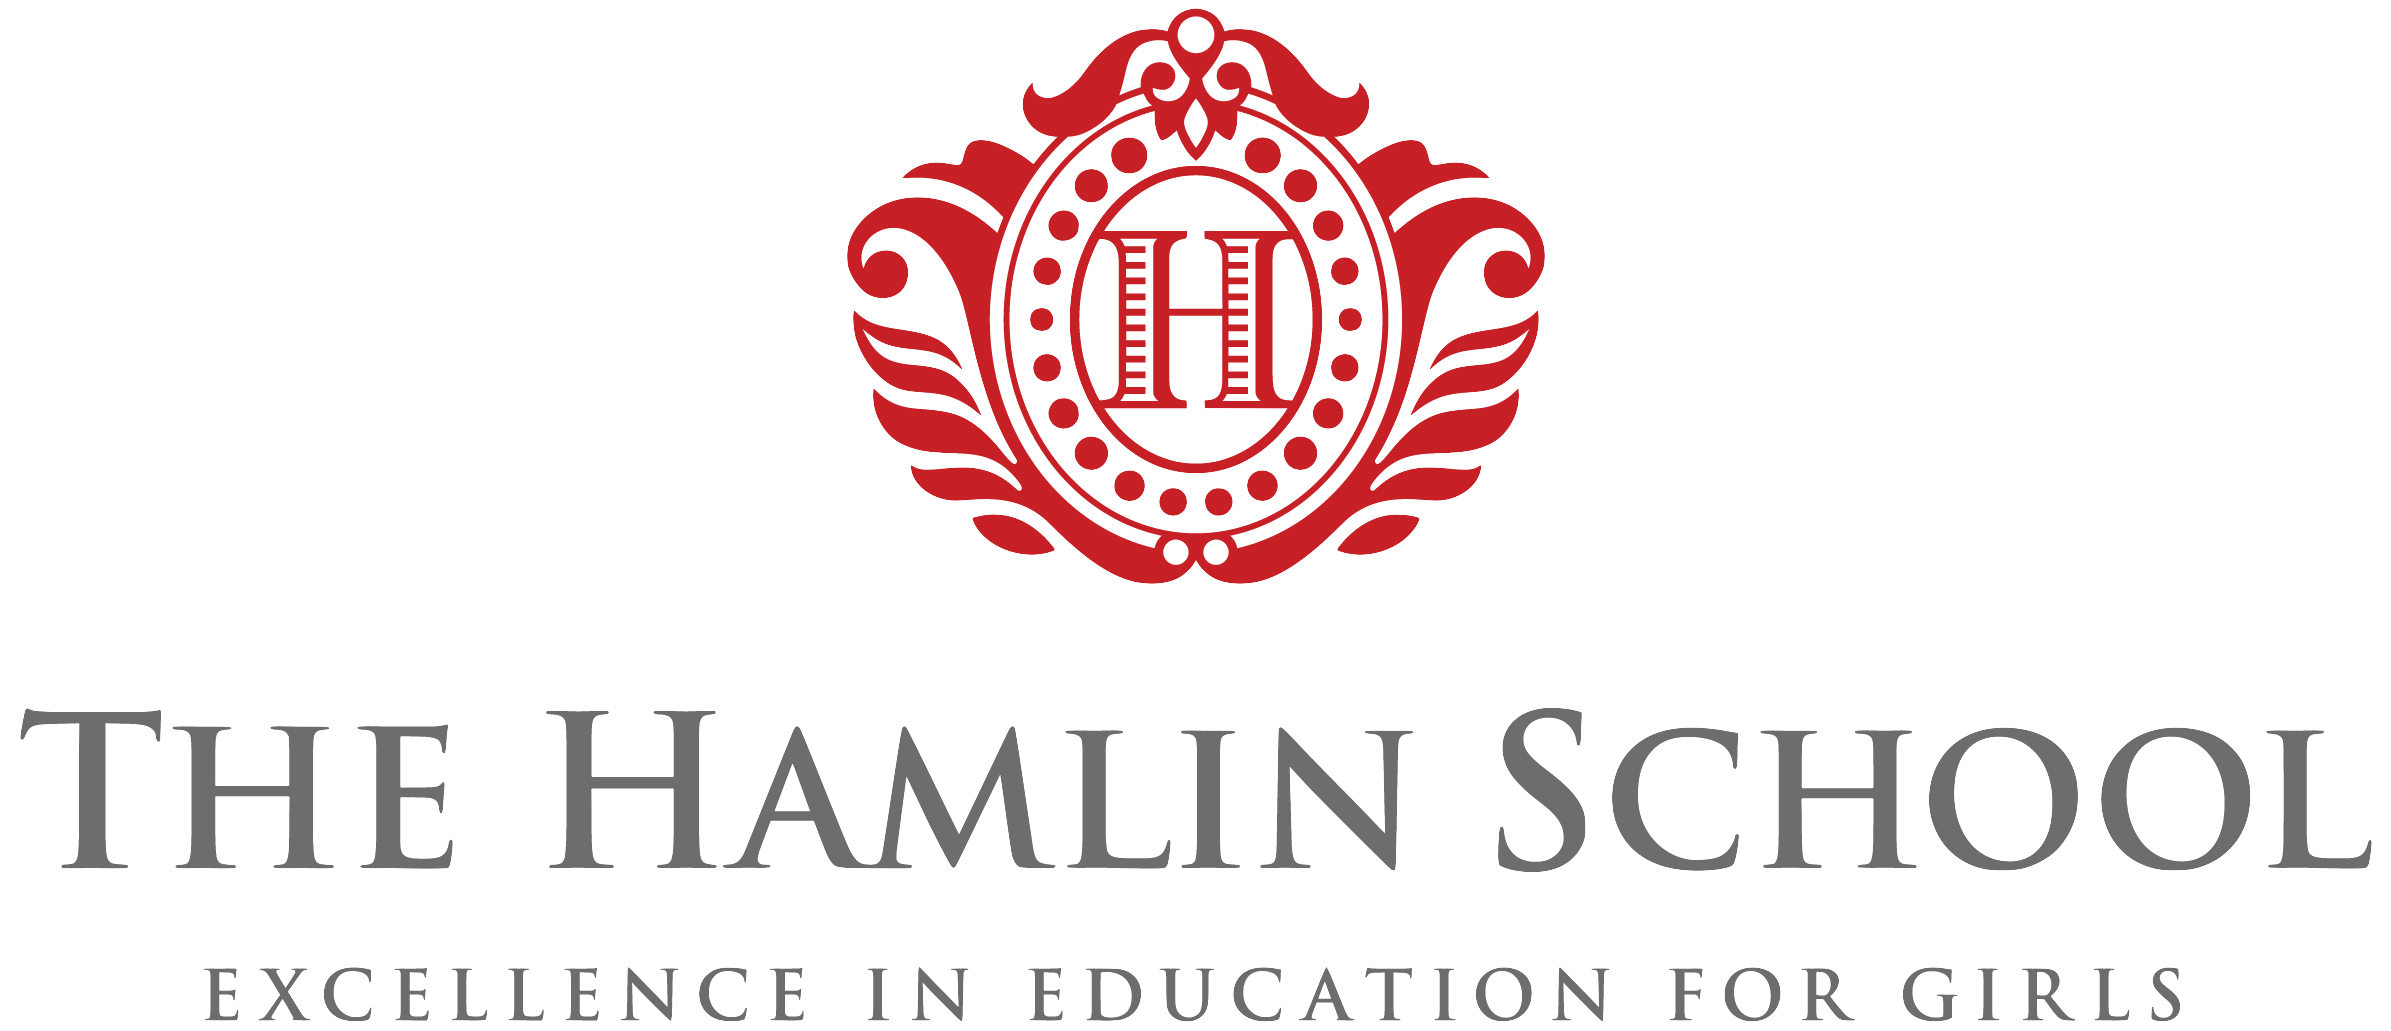 Coding Enrichment Classes at The Hamlin School